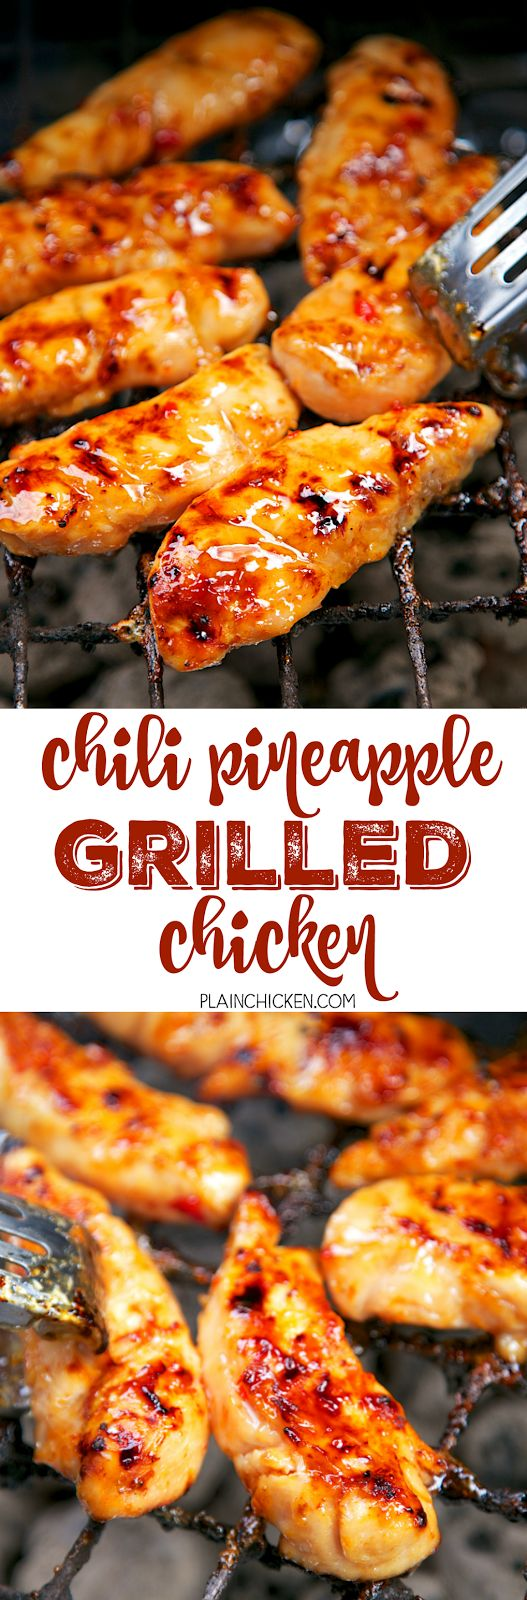 Chili Pineapple Grilled Chicken - only simple 4 ingredients! Chicken, chili sauce, pineapple juice and honey. TONS of great flavor!! We ate this chicken 2 days in a row!: